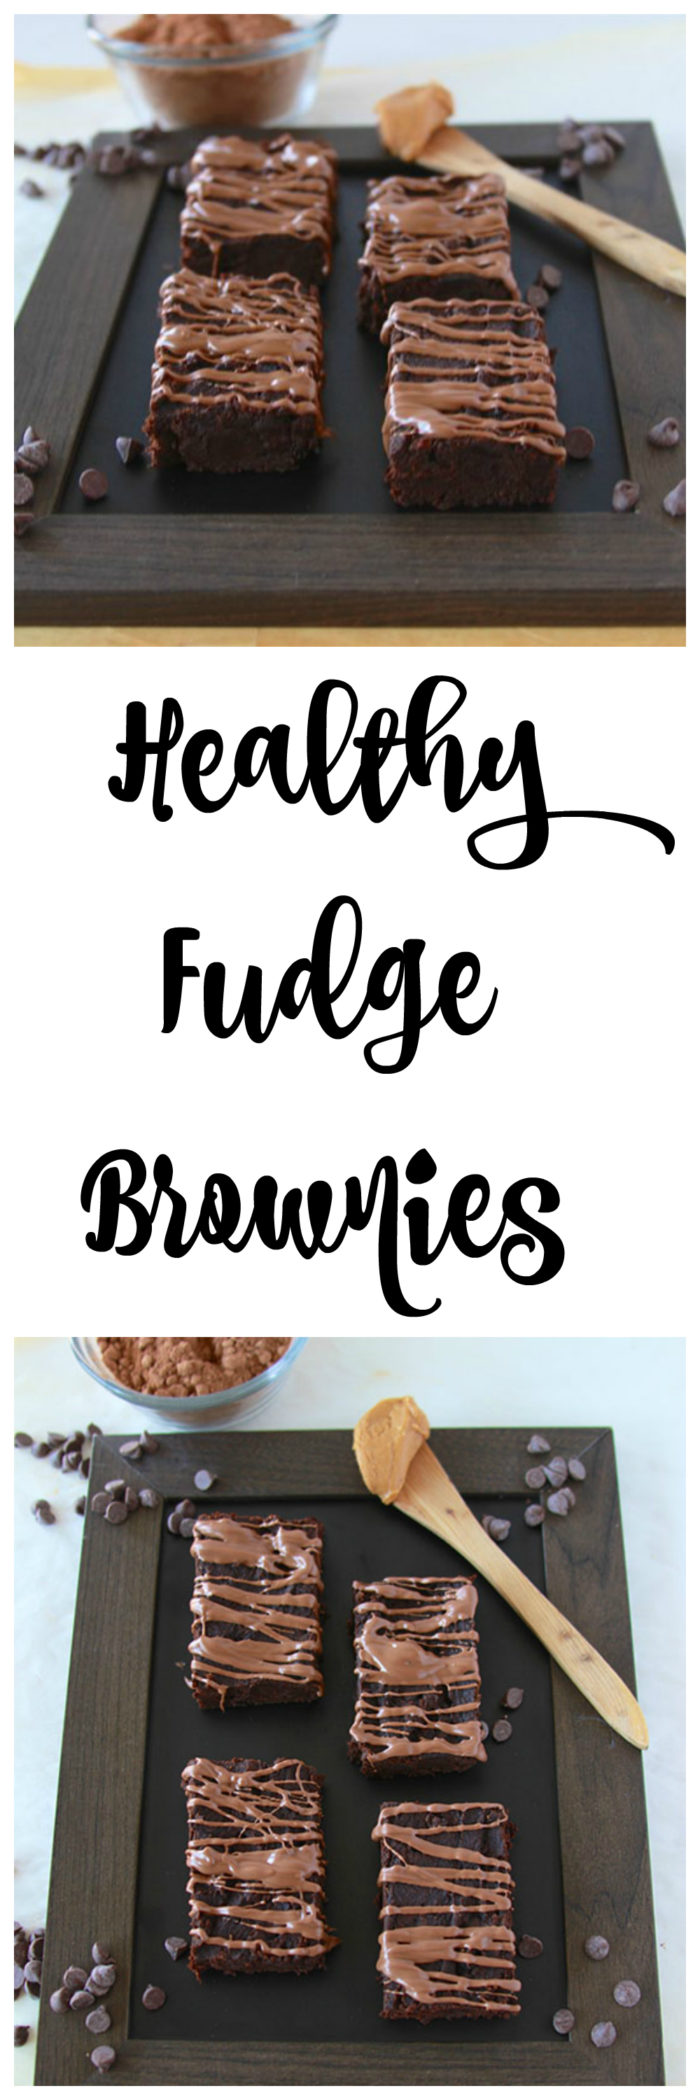 Healthy Fudge Brownies is only 4 ingredients and packed with protein and antioxidants! www.cookingwithruthie.com